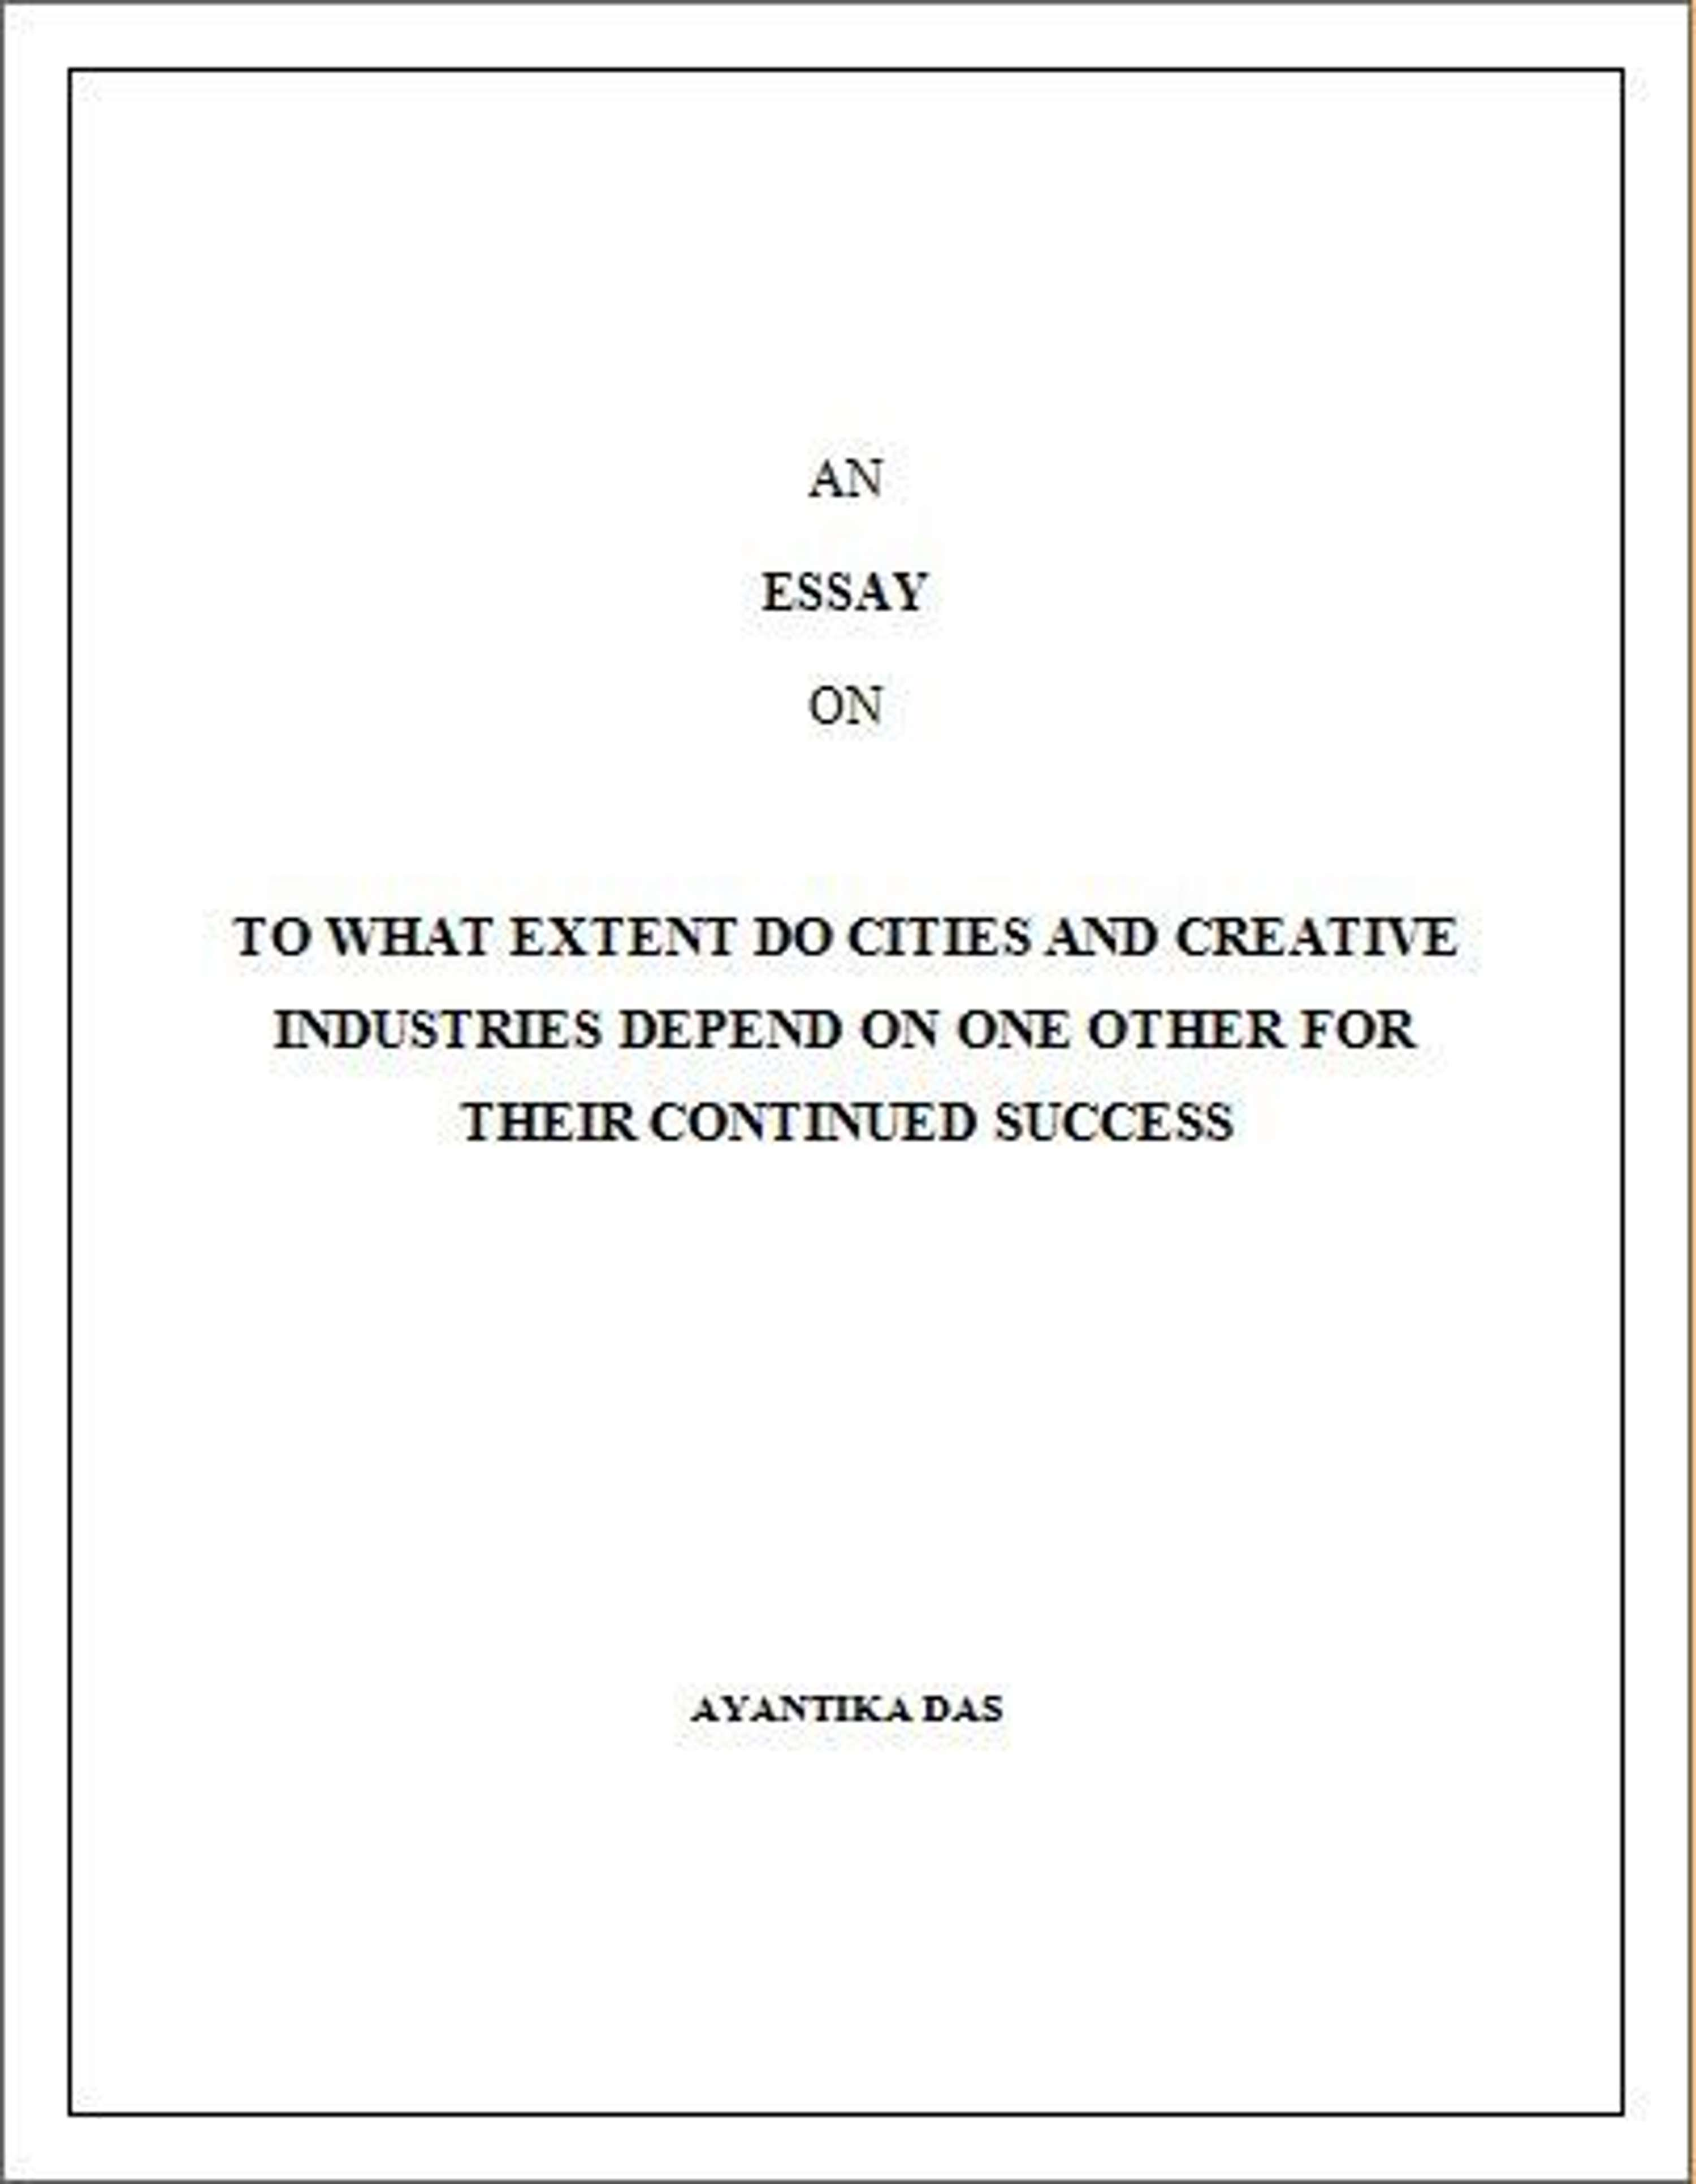 essay on to what extent do cities and creative industries depend on  essay on to what extent do cities and creative industries depend on one  other for their continued success